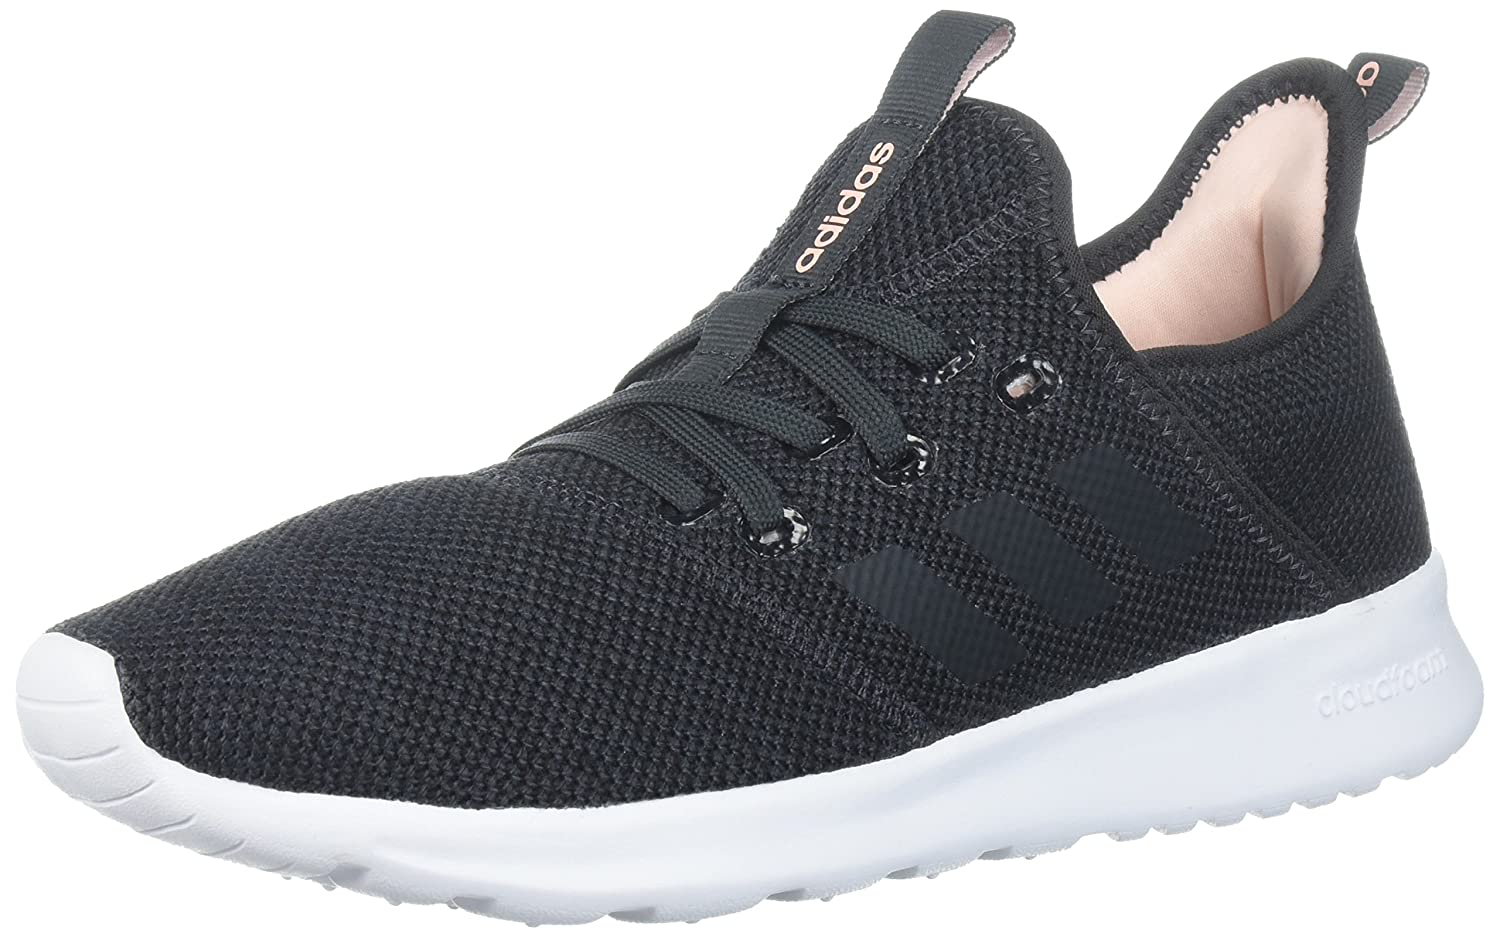 adidas Women's Cloudfoam Pure Running Shoe B0714BNQBM 7 B(M) US|Carbon/Carbon